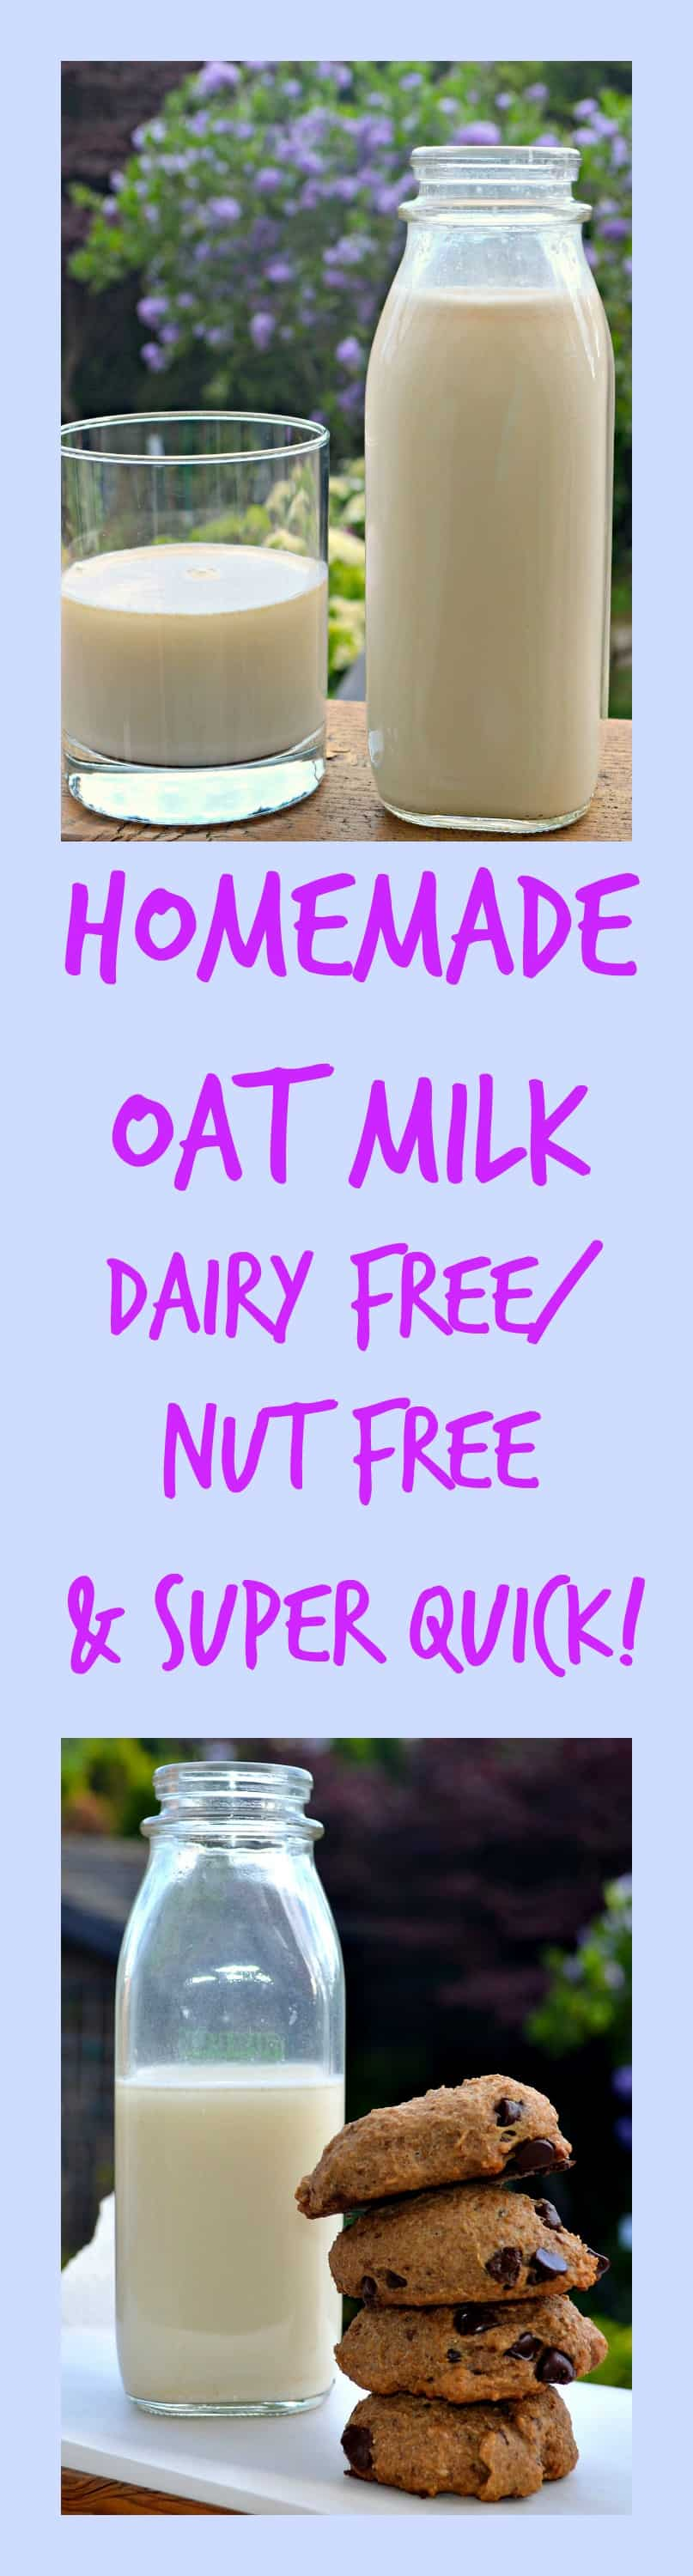 Making your own non-dairy oat milk is super easy and super cheap with none of the nasty additives that come in store bought milks. #oatmilk #nondairymilk #vegan